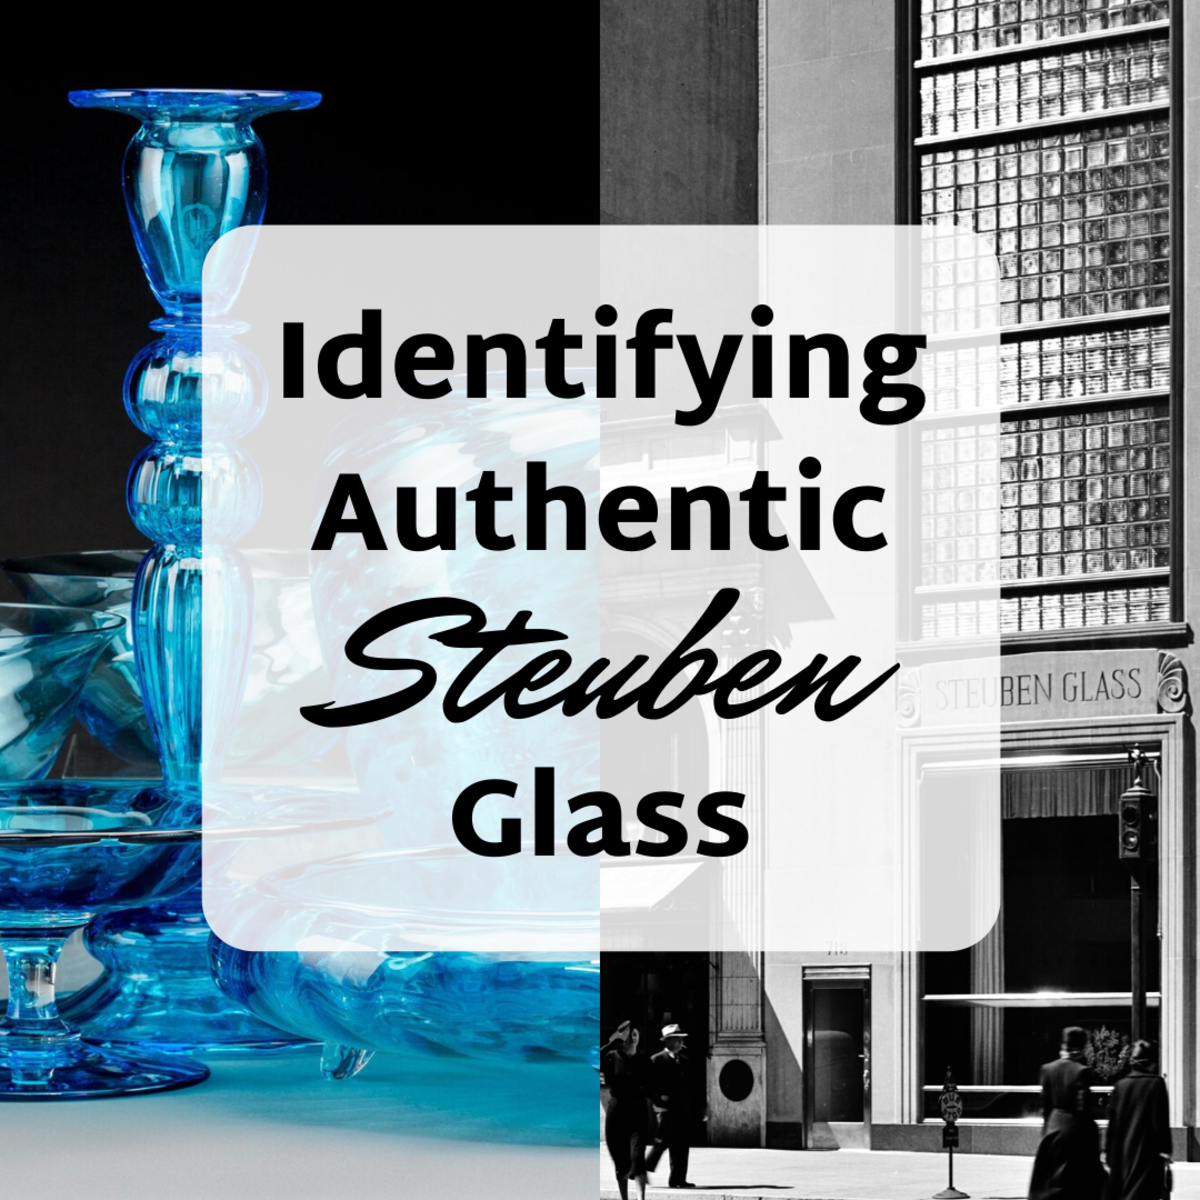 Learn how to distinguish authentic Steuben glass from fakes and forgeries. (On the left: Celeste Blue table service from 1920. On the right: The Steuben Glass building on 5th Avenue, September 1937.)